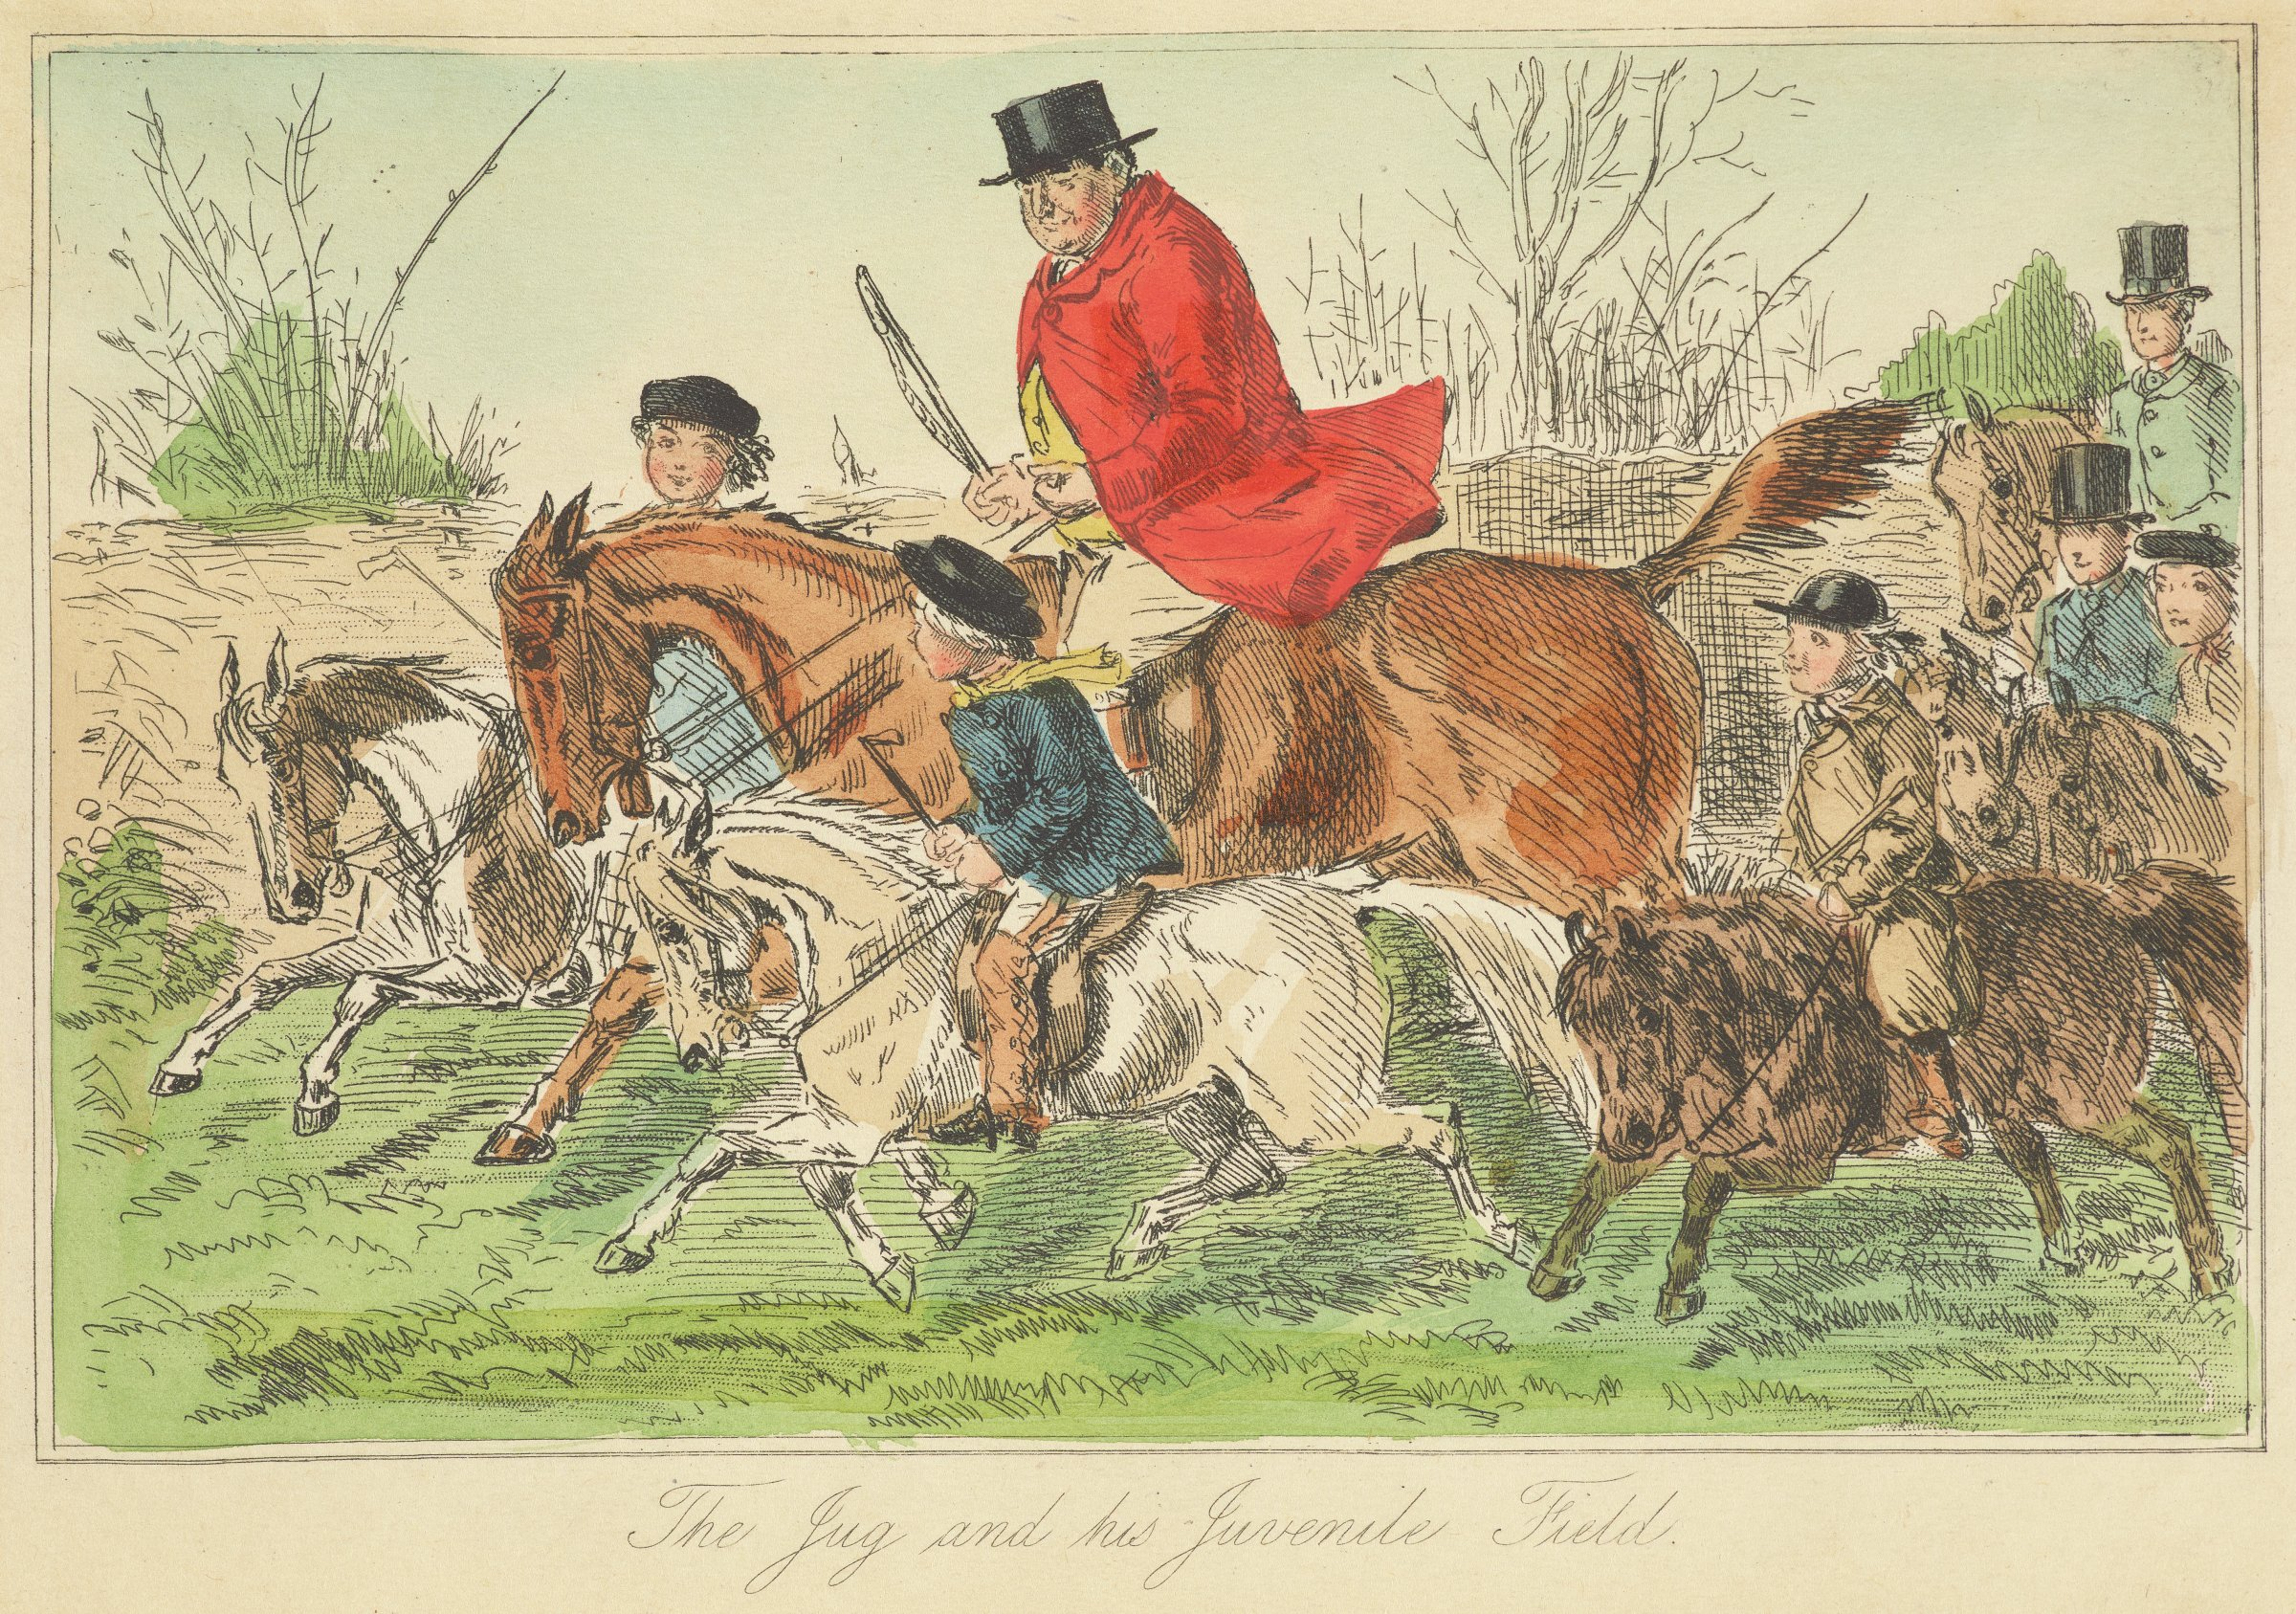 A man in a red coat rides a brown horse in the middle of children riding small horses.